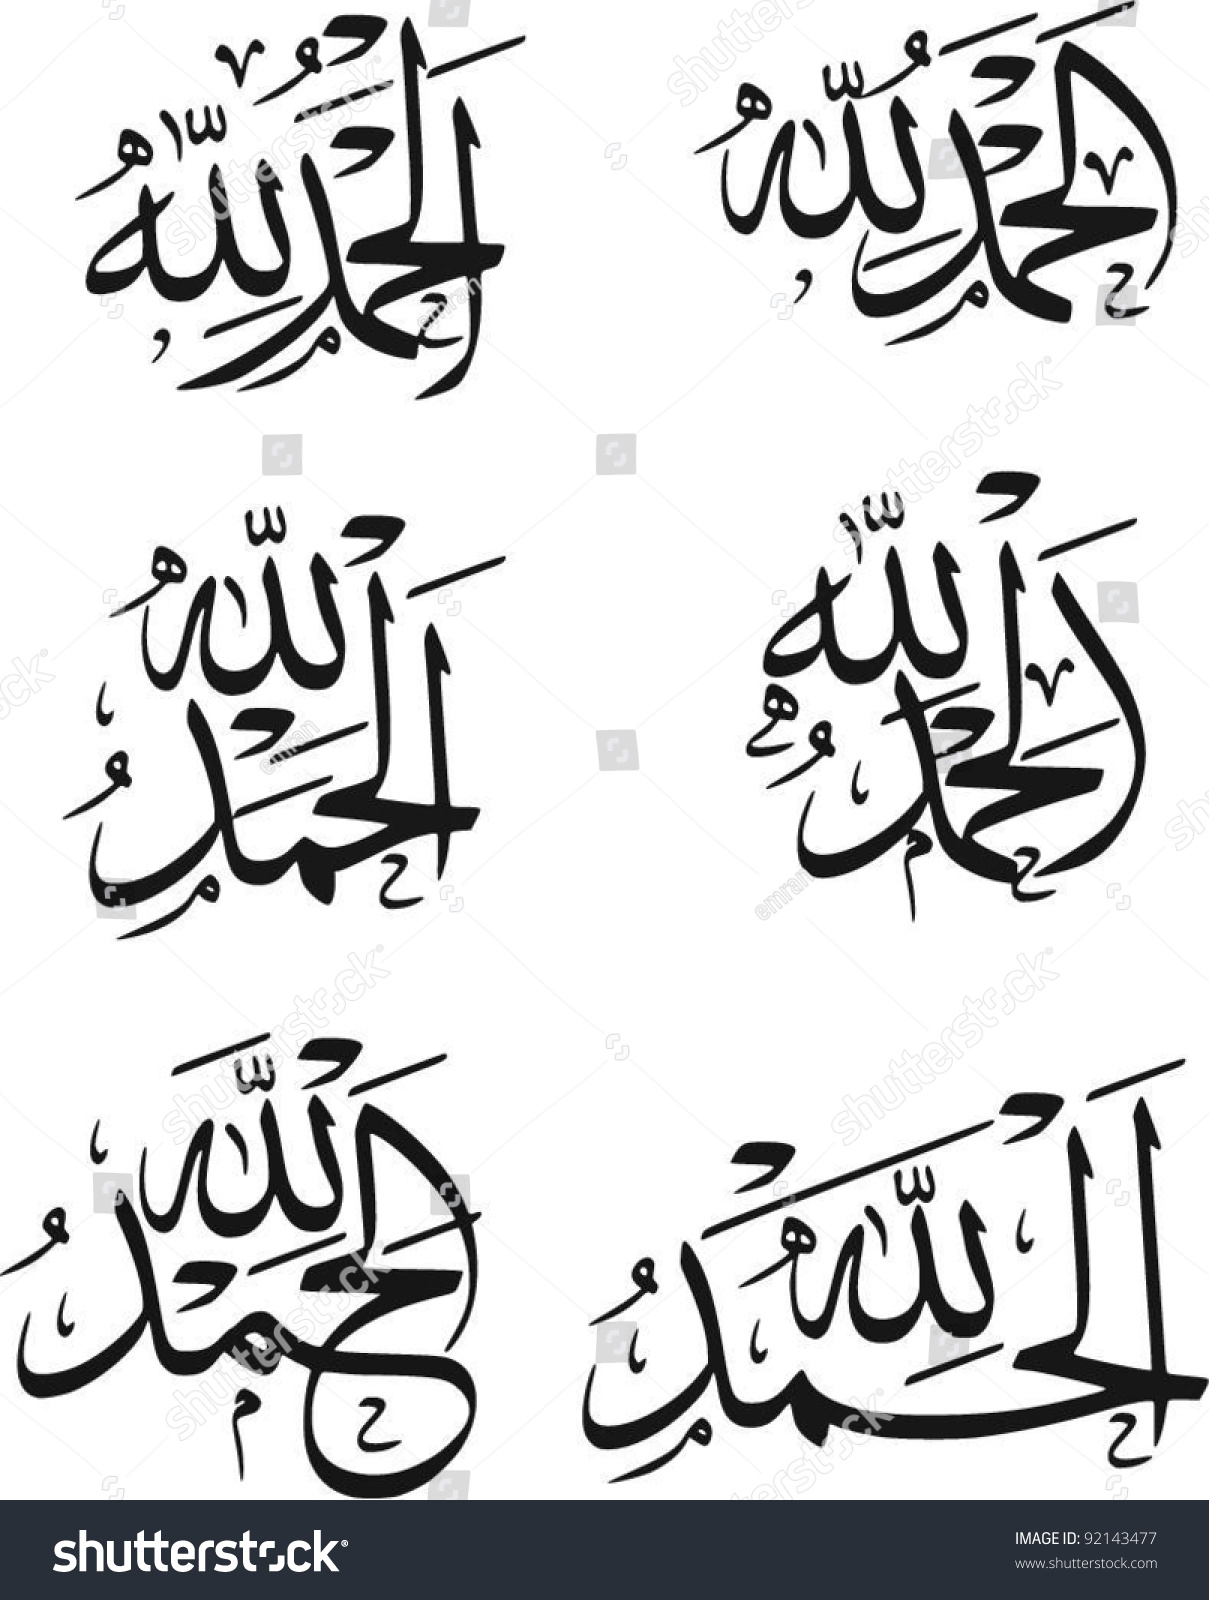 ... Arabic Calligraphy Styles Isolated On White Stock Vector Illustration